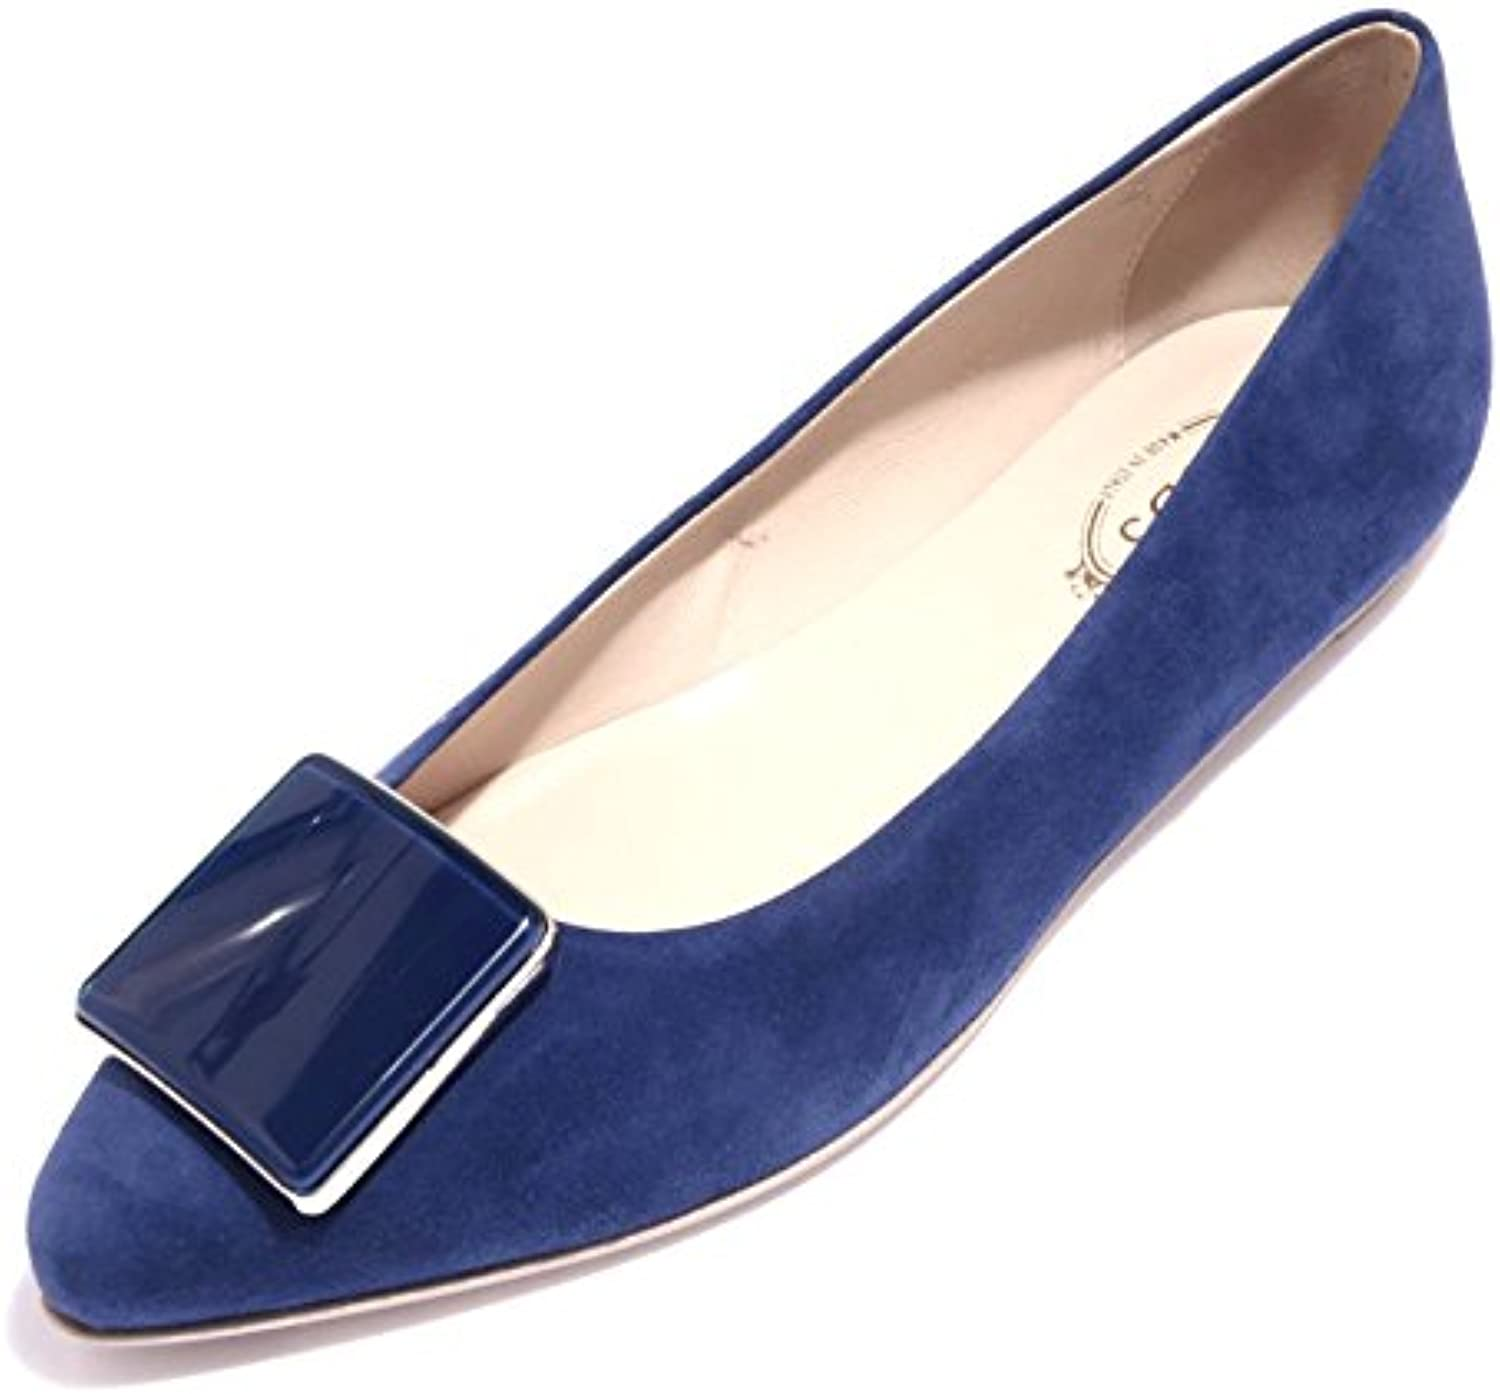 89718 ballerina blu TOD'S CUOIO PLACCA scarpa donna shoes women